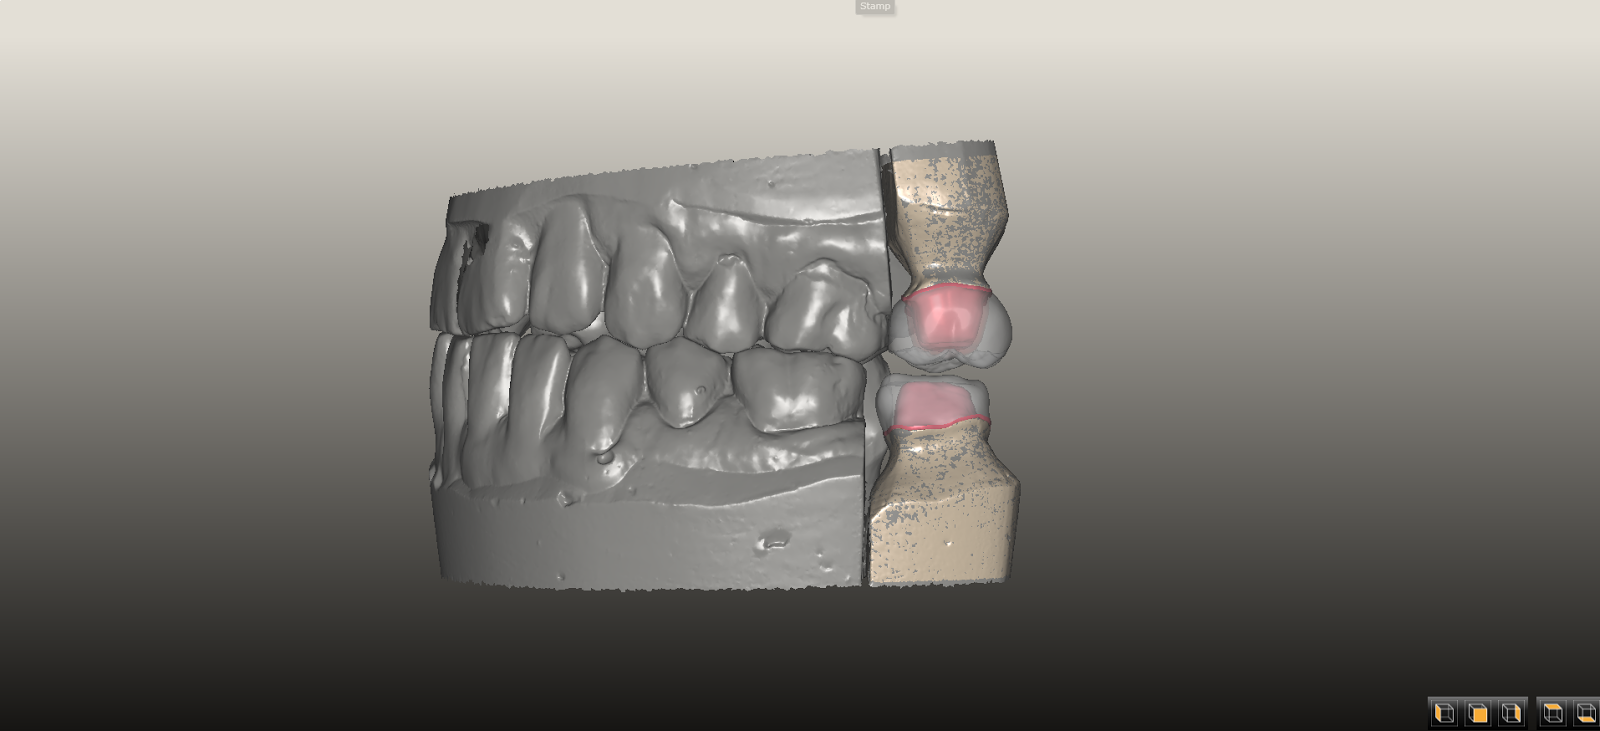 In spite of high zirconia mechanical strength, chipping and fracture of layering porcelains applied to zirconia frameworks continue to be a problem.